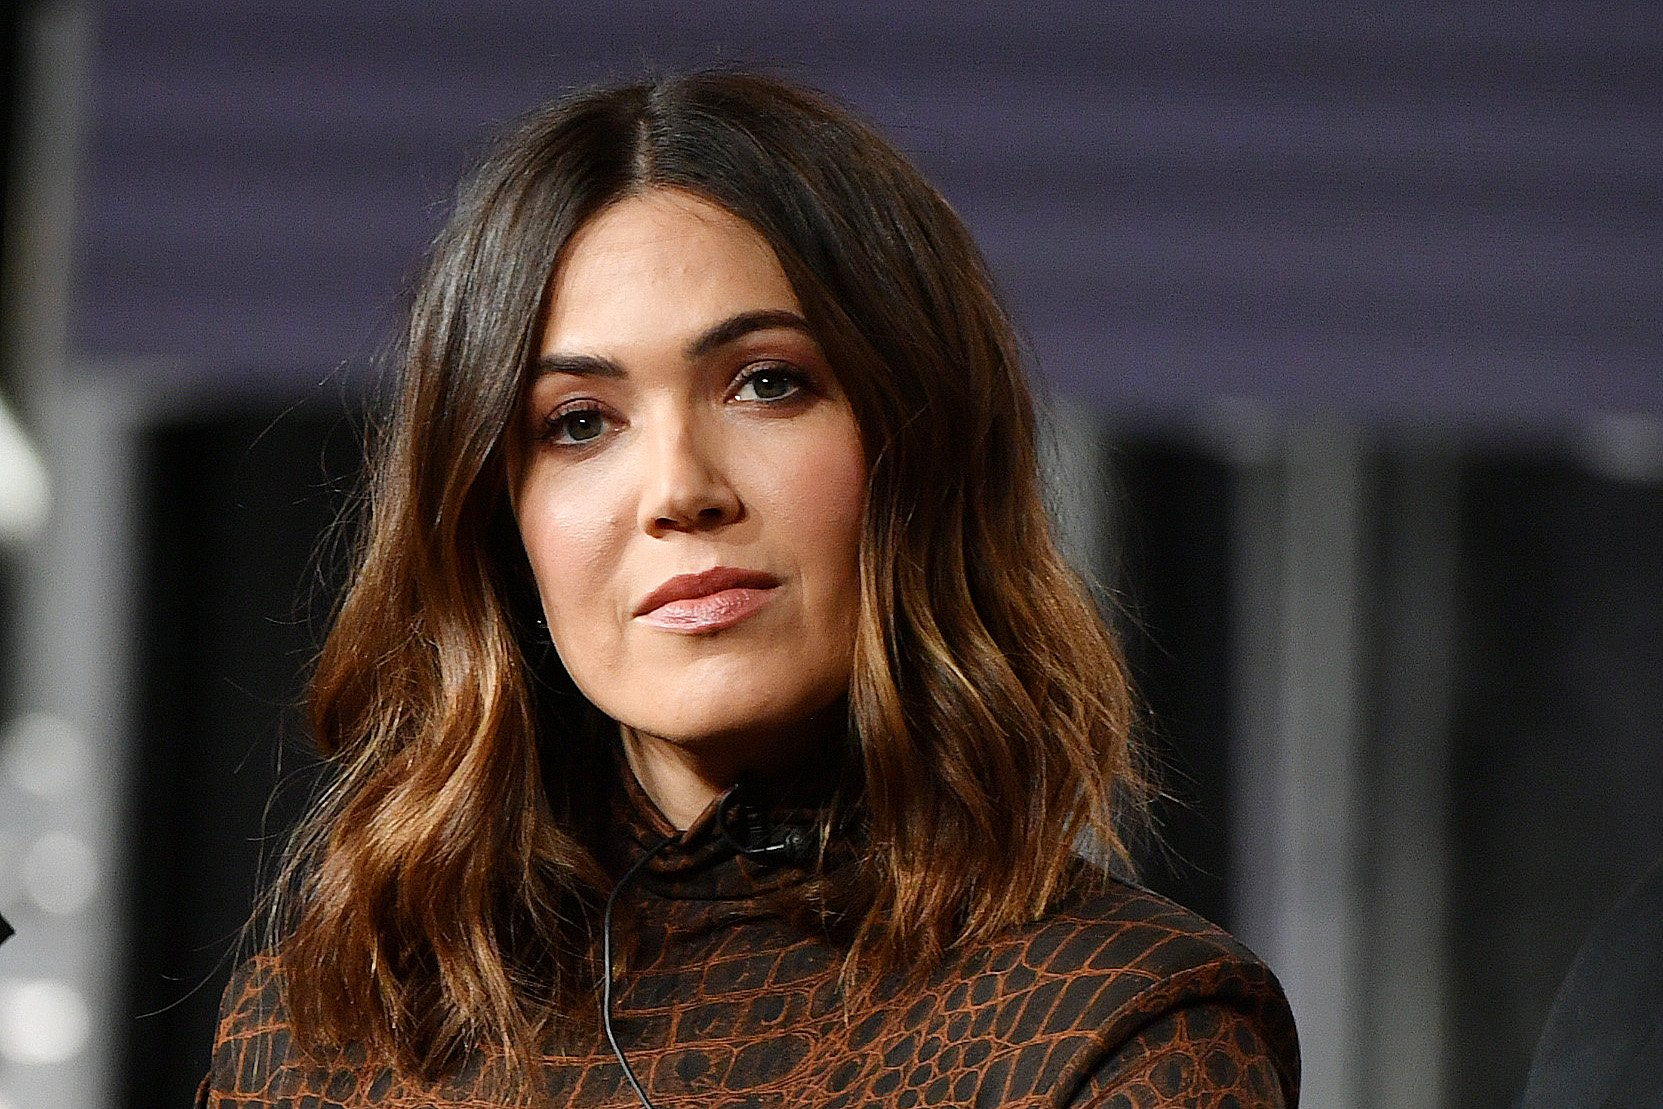 Mandy Moore during the NBCUniversal segment of the 2020 Winter TCA Press Tour at The Langham Huntington on January 11, 2020 in Pasadena, California | Photo: Getty Images